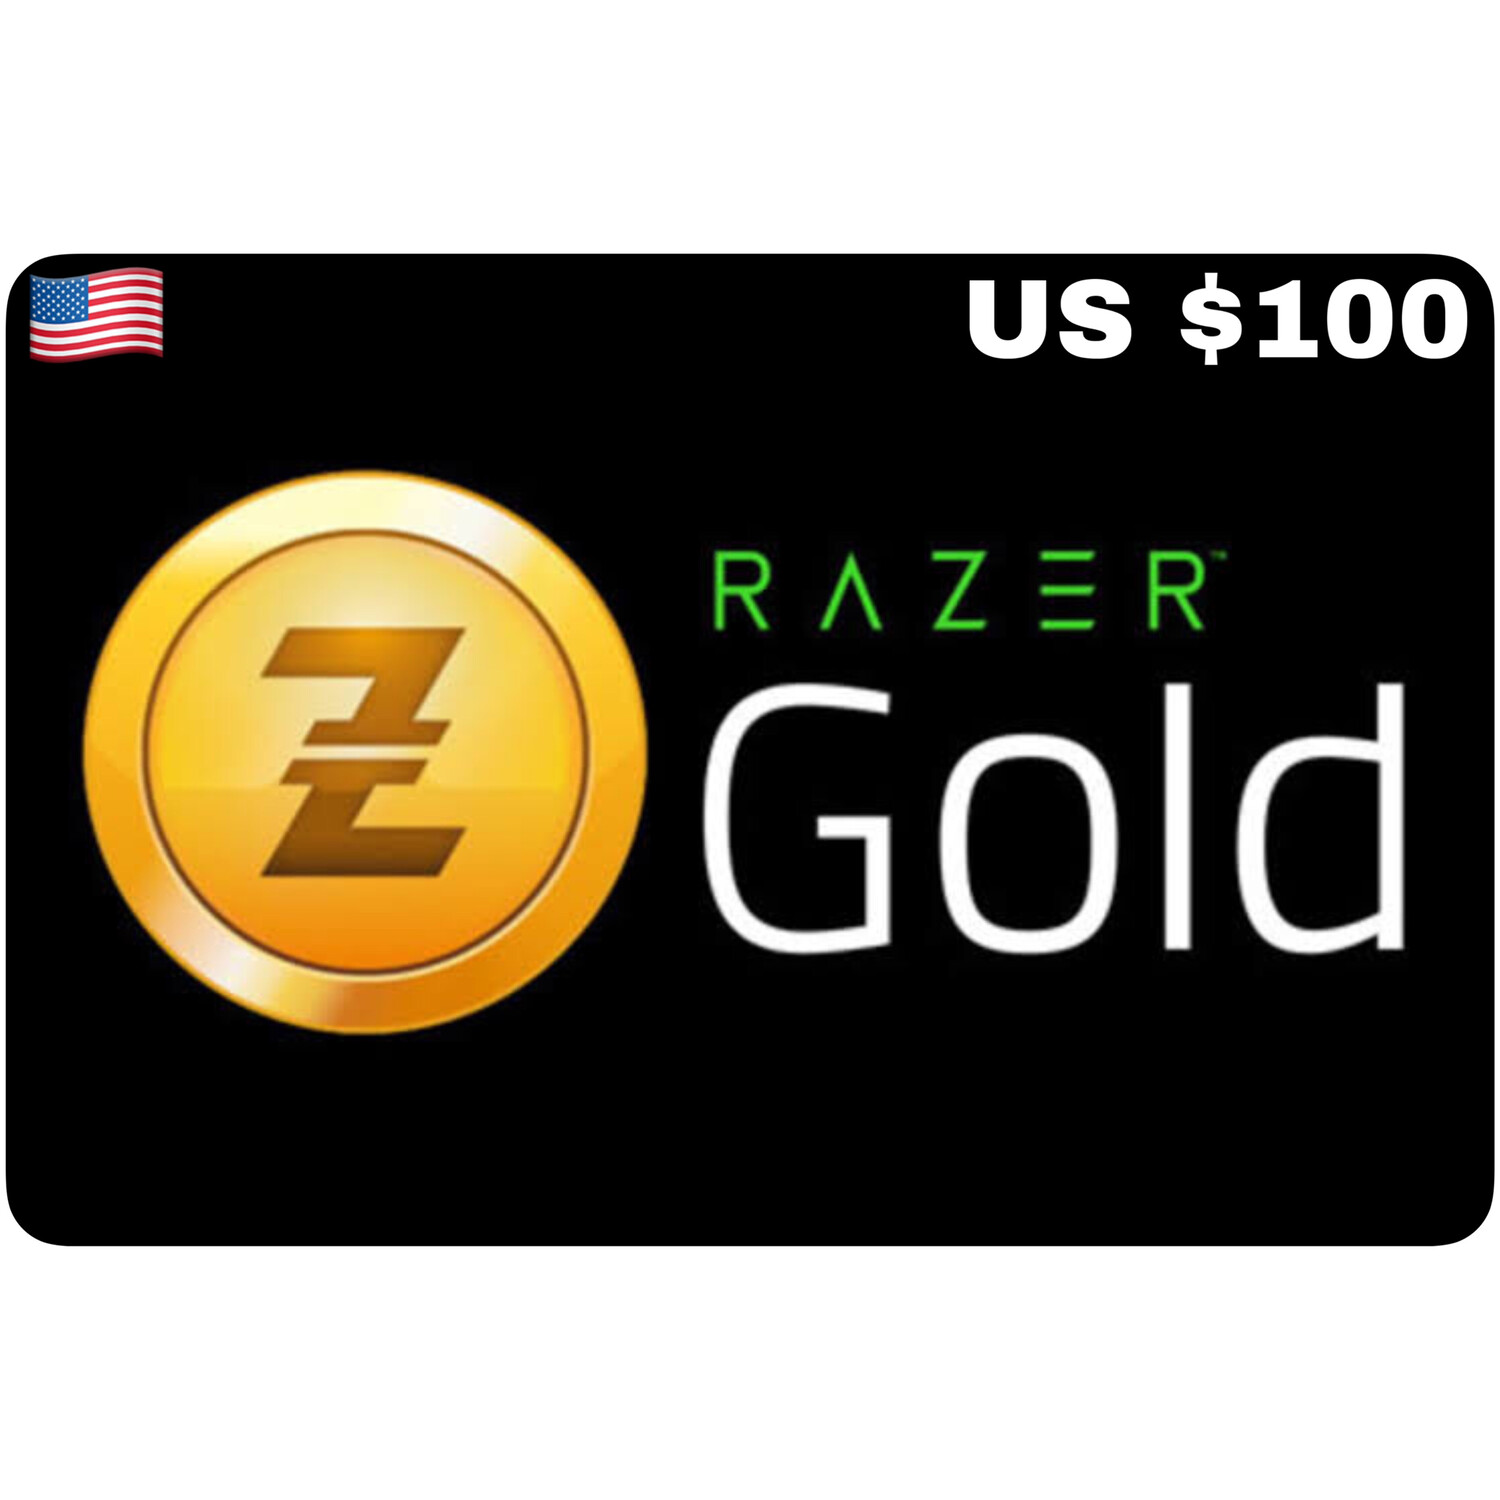 Razer Gold Pin US $100